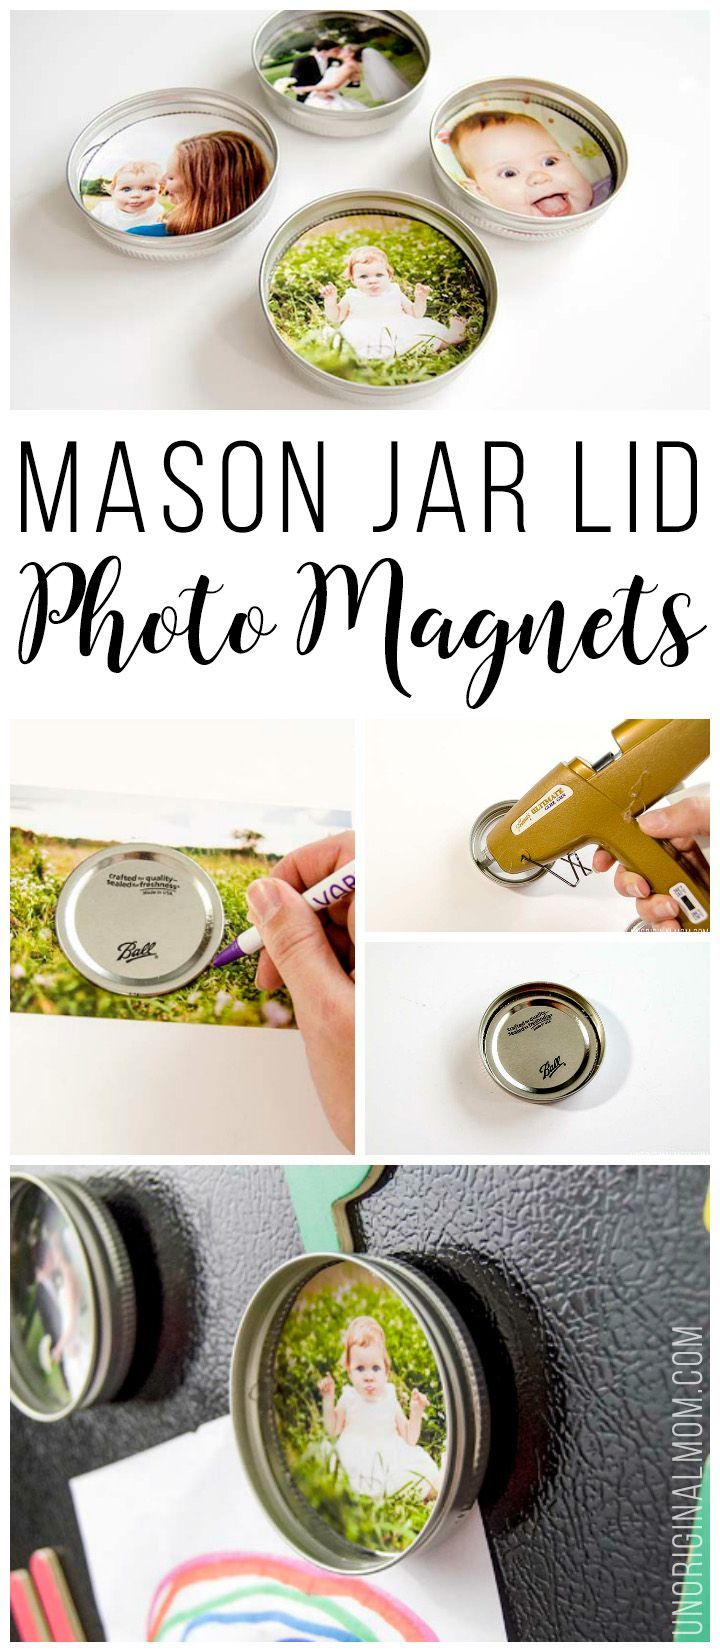 What a cute way to use up leftover mason jar lids - turn them into photo magnets! This would make a great budget friendly DIY gift. #GorillaTough #GorillaOfCourse #ad